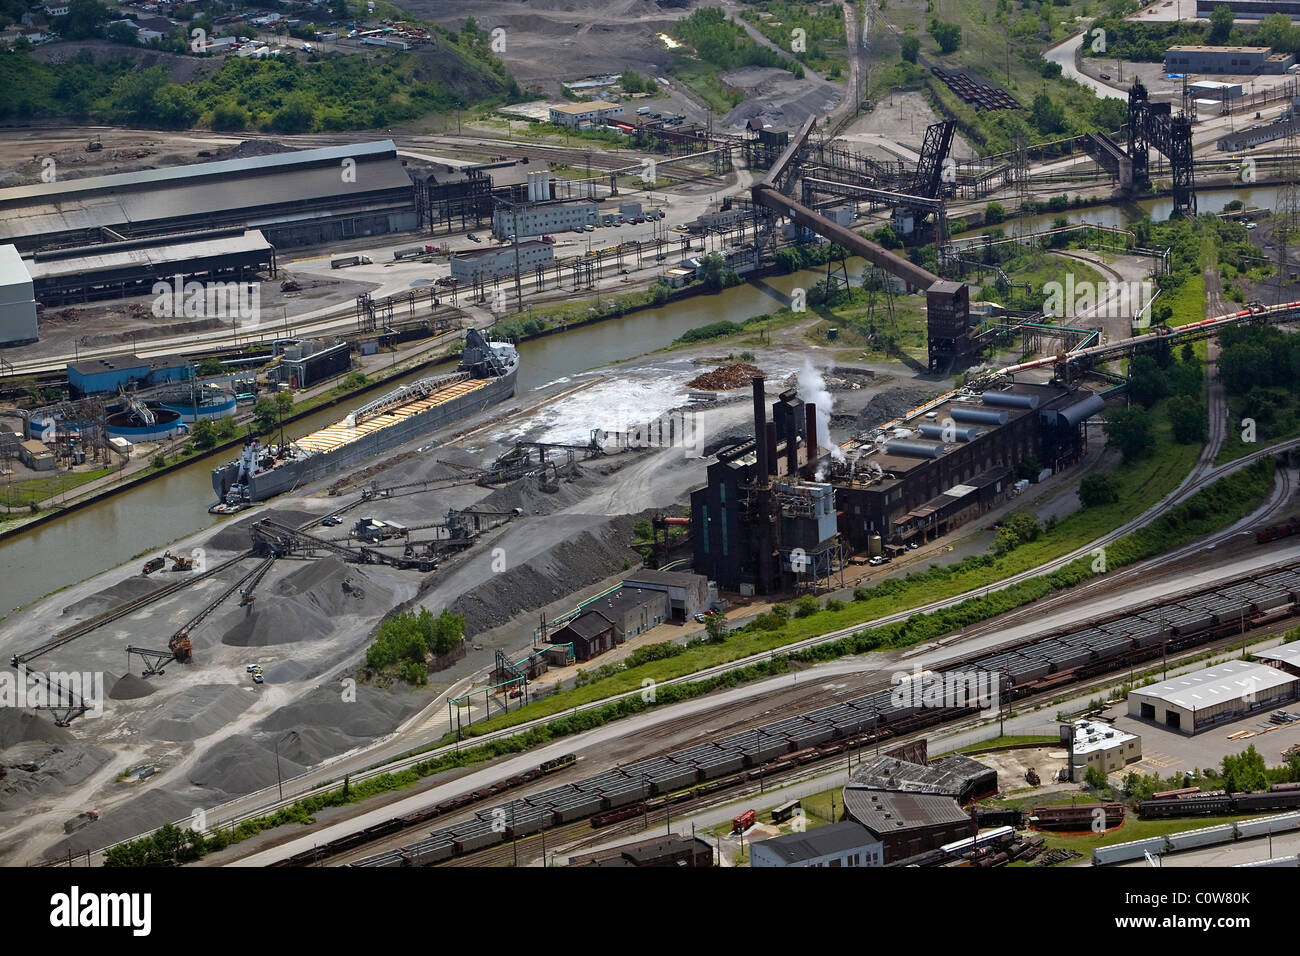 aerial view above steel industrial area Cuyahoga river Cleveland Ohio - Stock Image